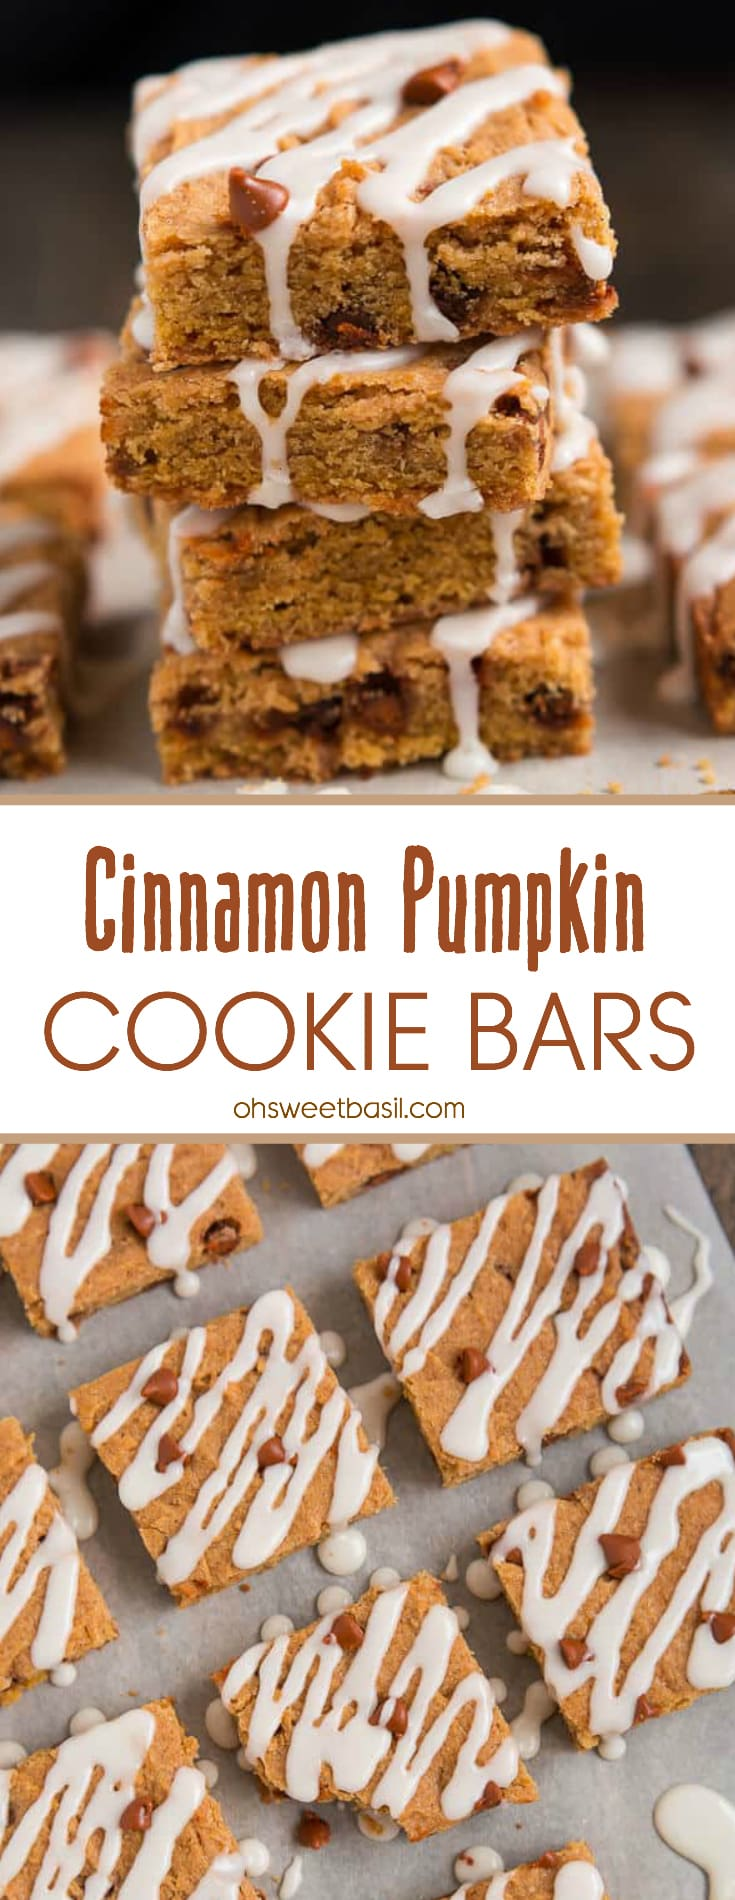 A stack of chewy Cinnamon Pumpkin Cookie Bars with a sweet icing